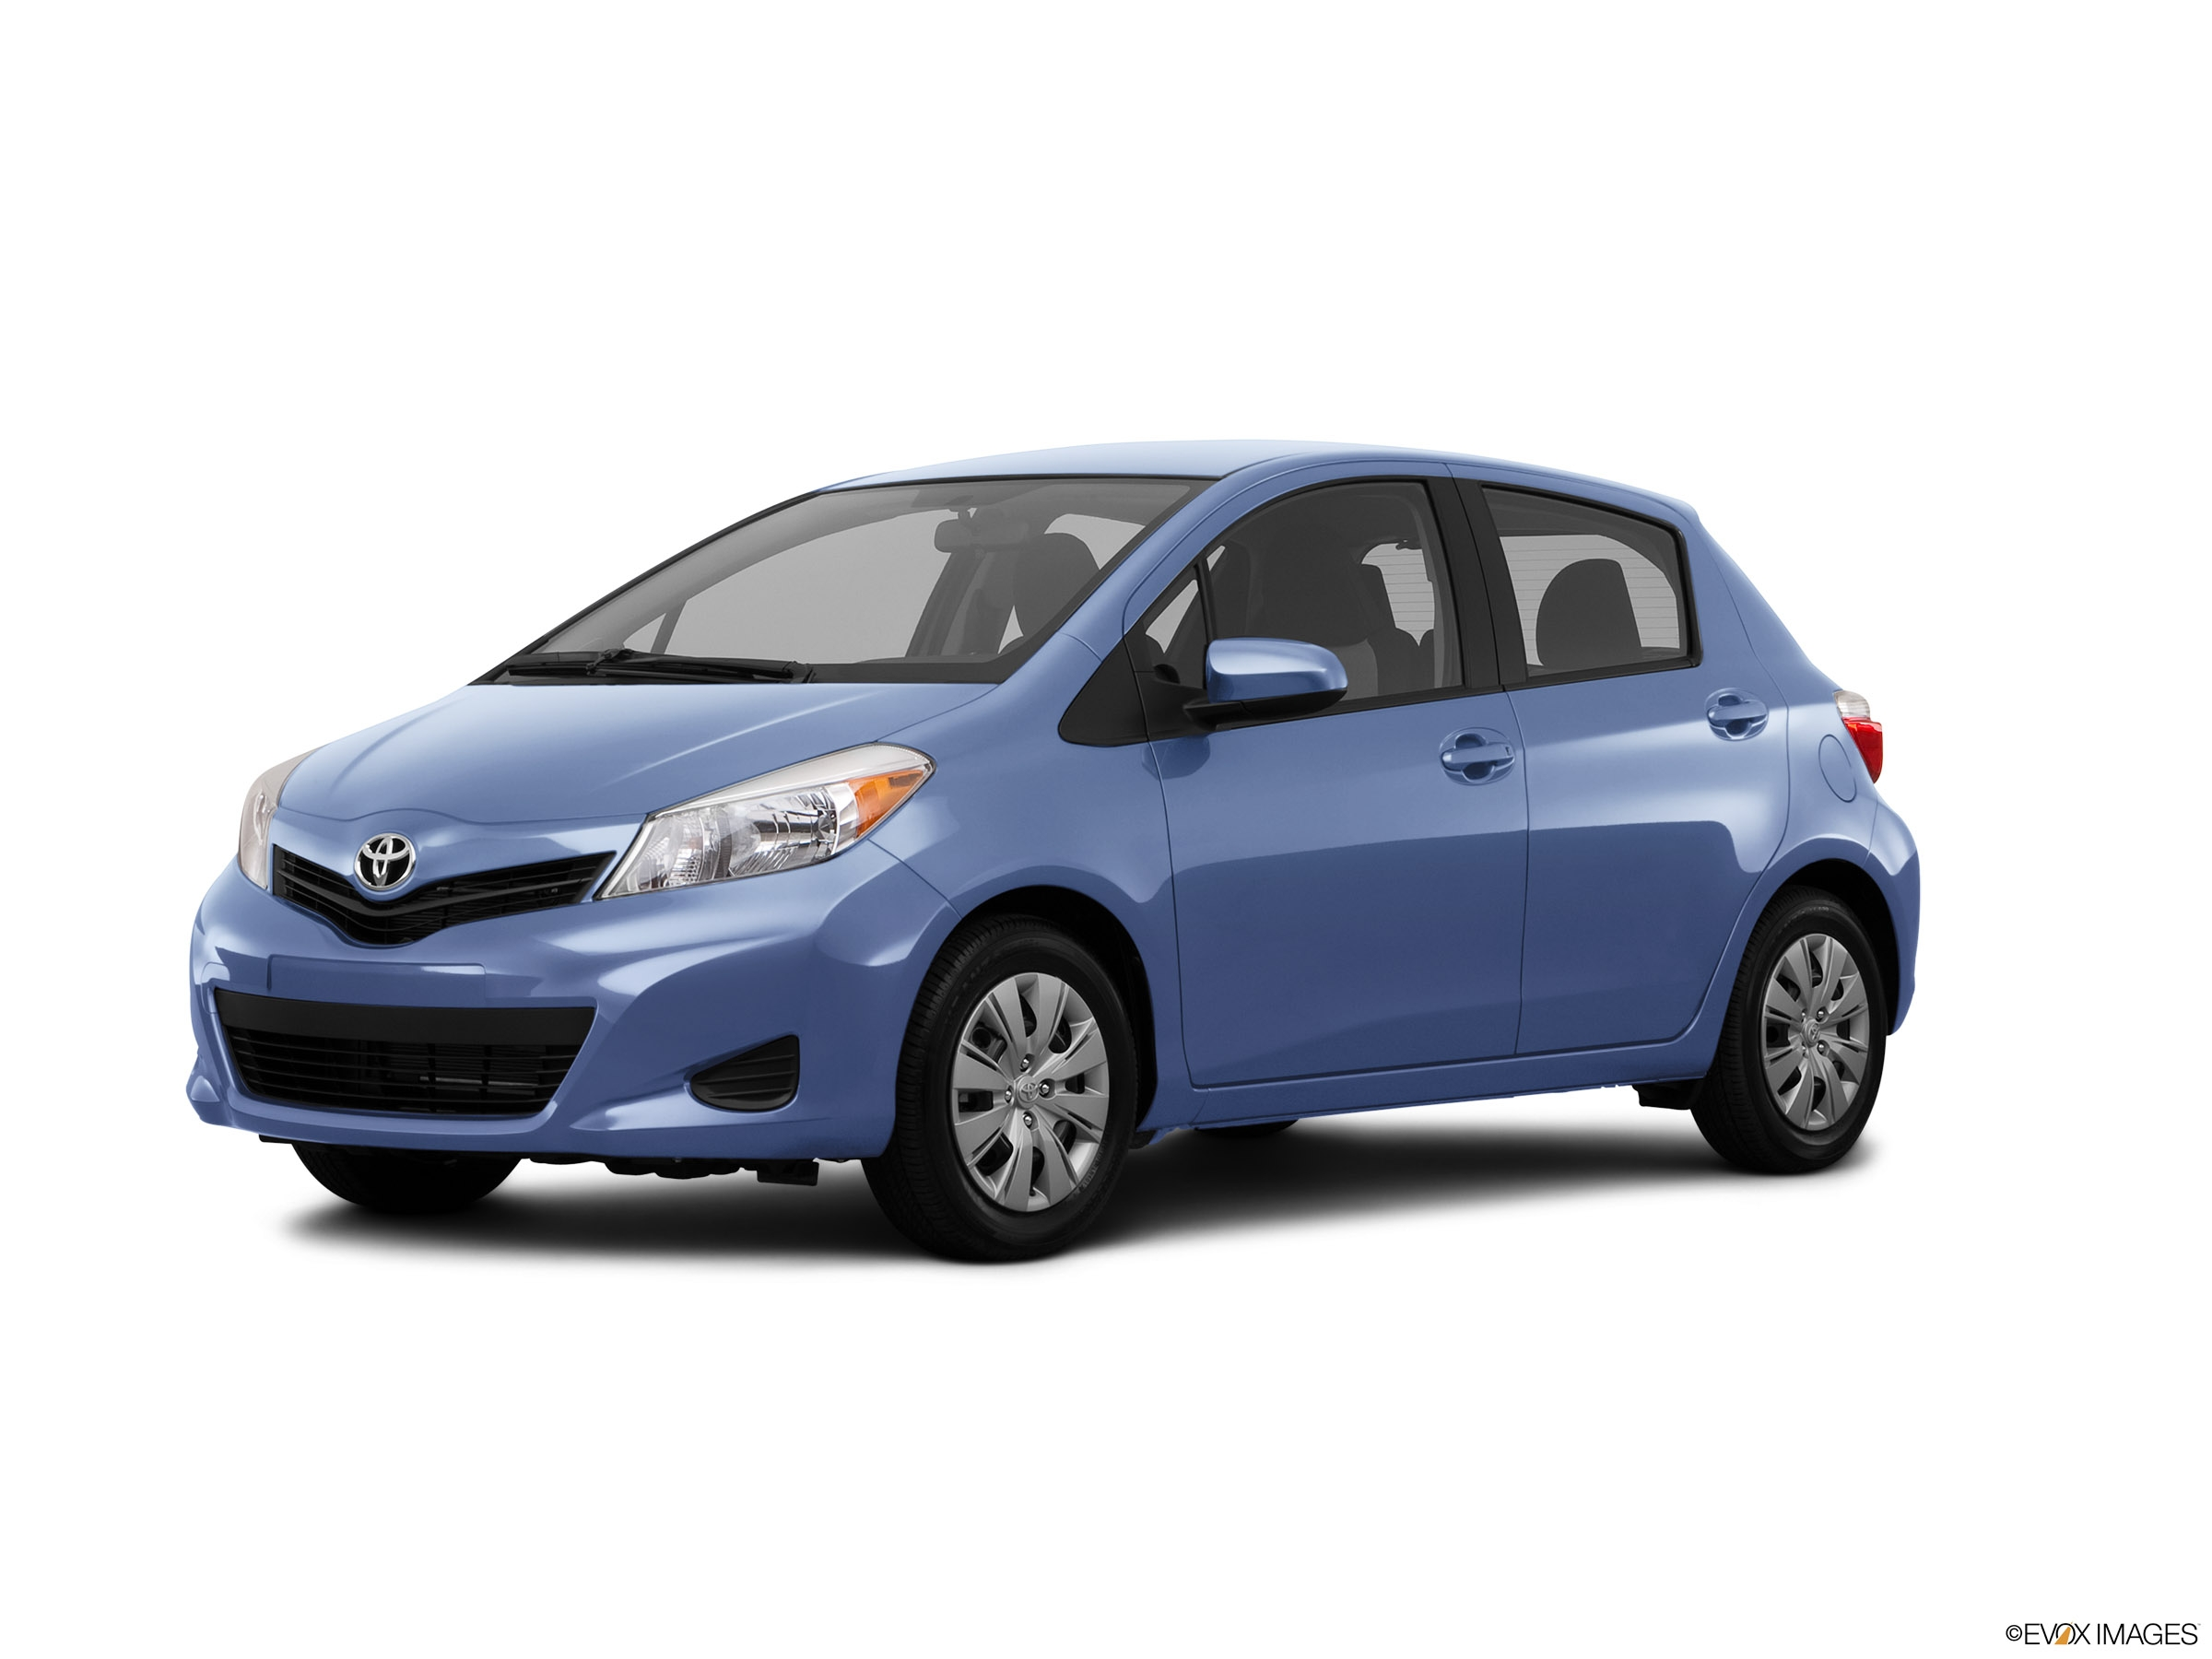 Honda Fit Dealer Invoice